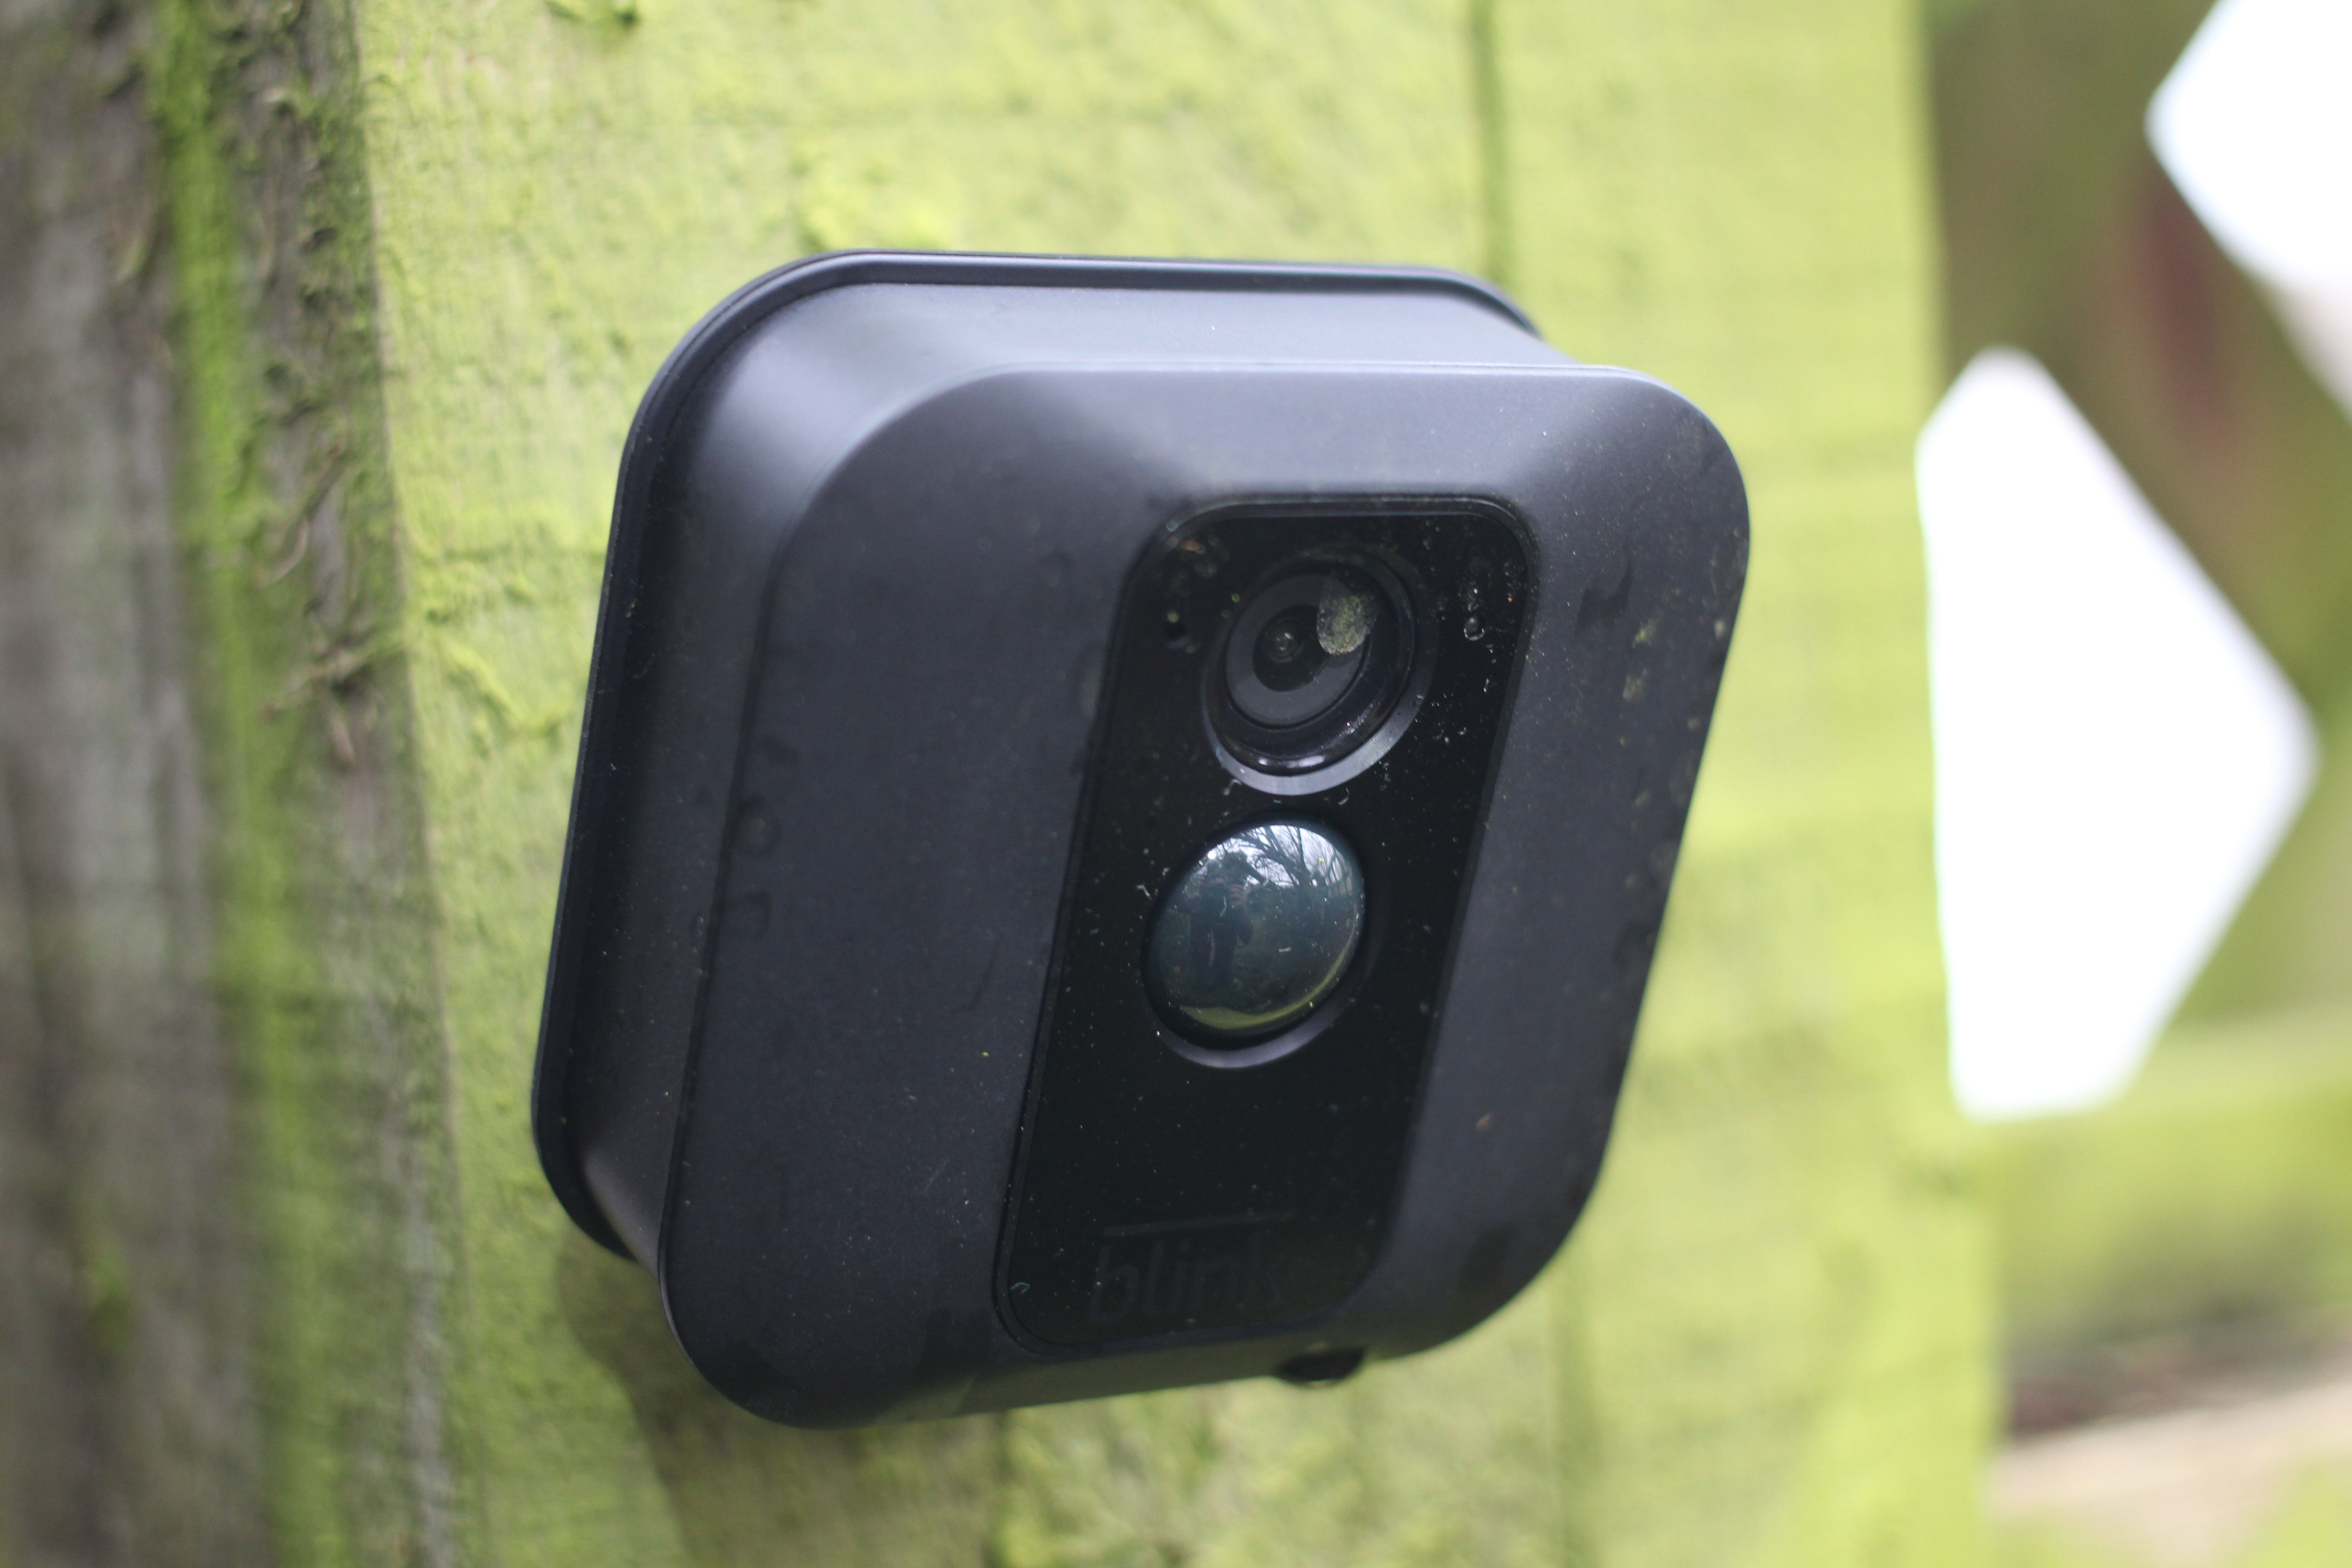 Blink XT Review | Trusted Reviews